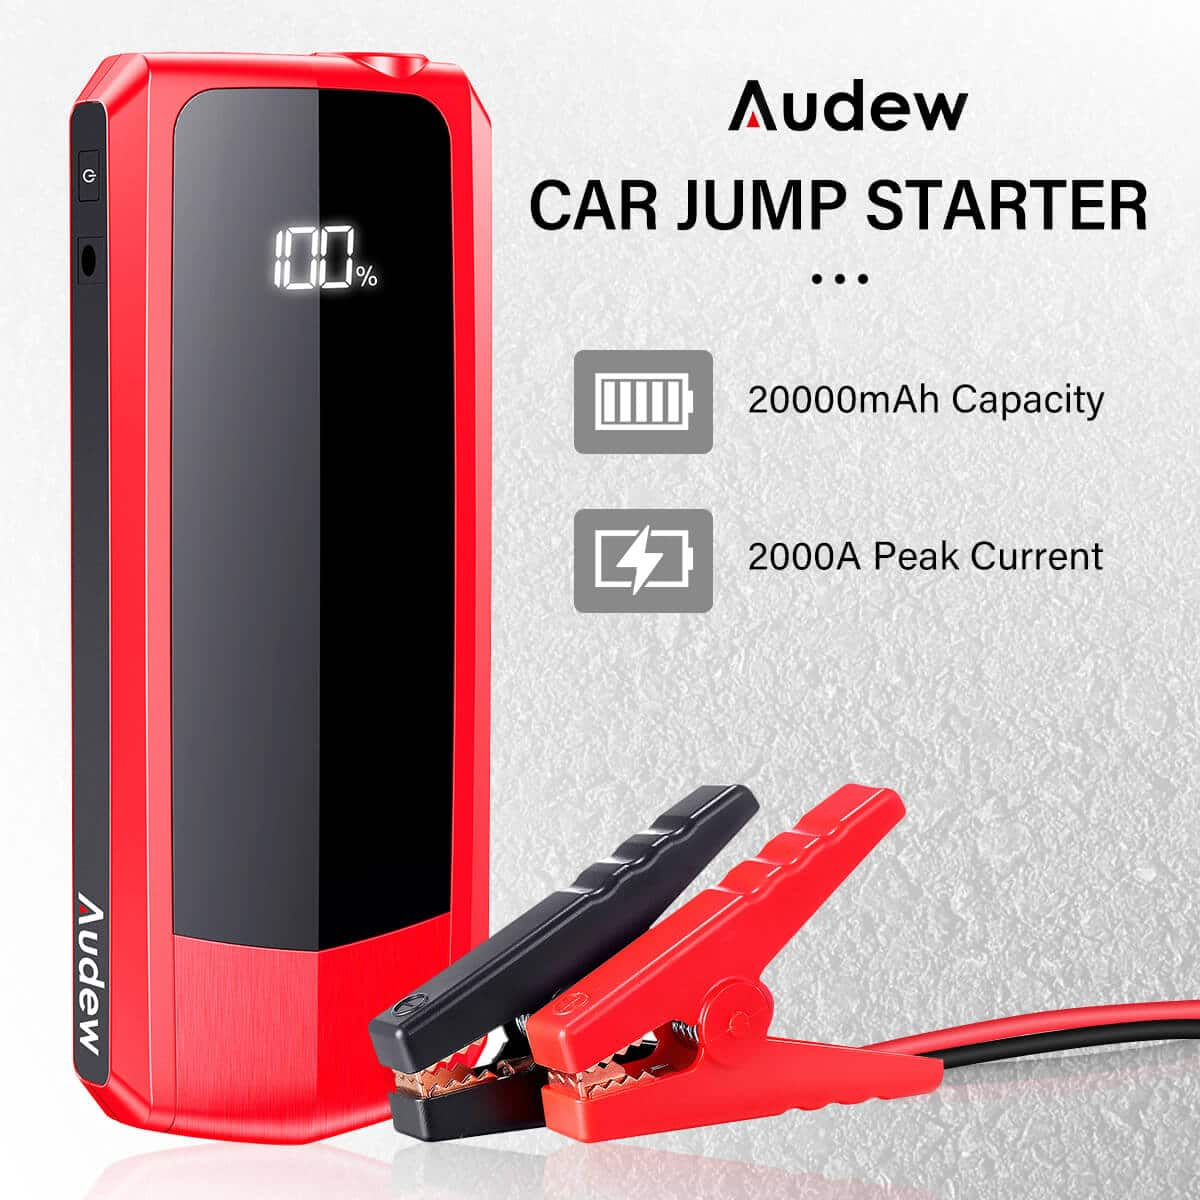 Audew 2000A Peak 20000mAh Car Jump Starter for All Gas Engines or Up To 8.5L Diesel Engines with LCD Power Display $67.65